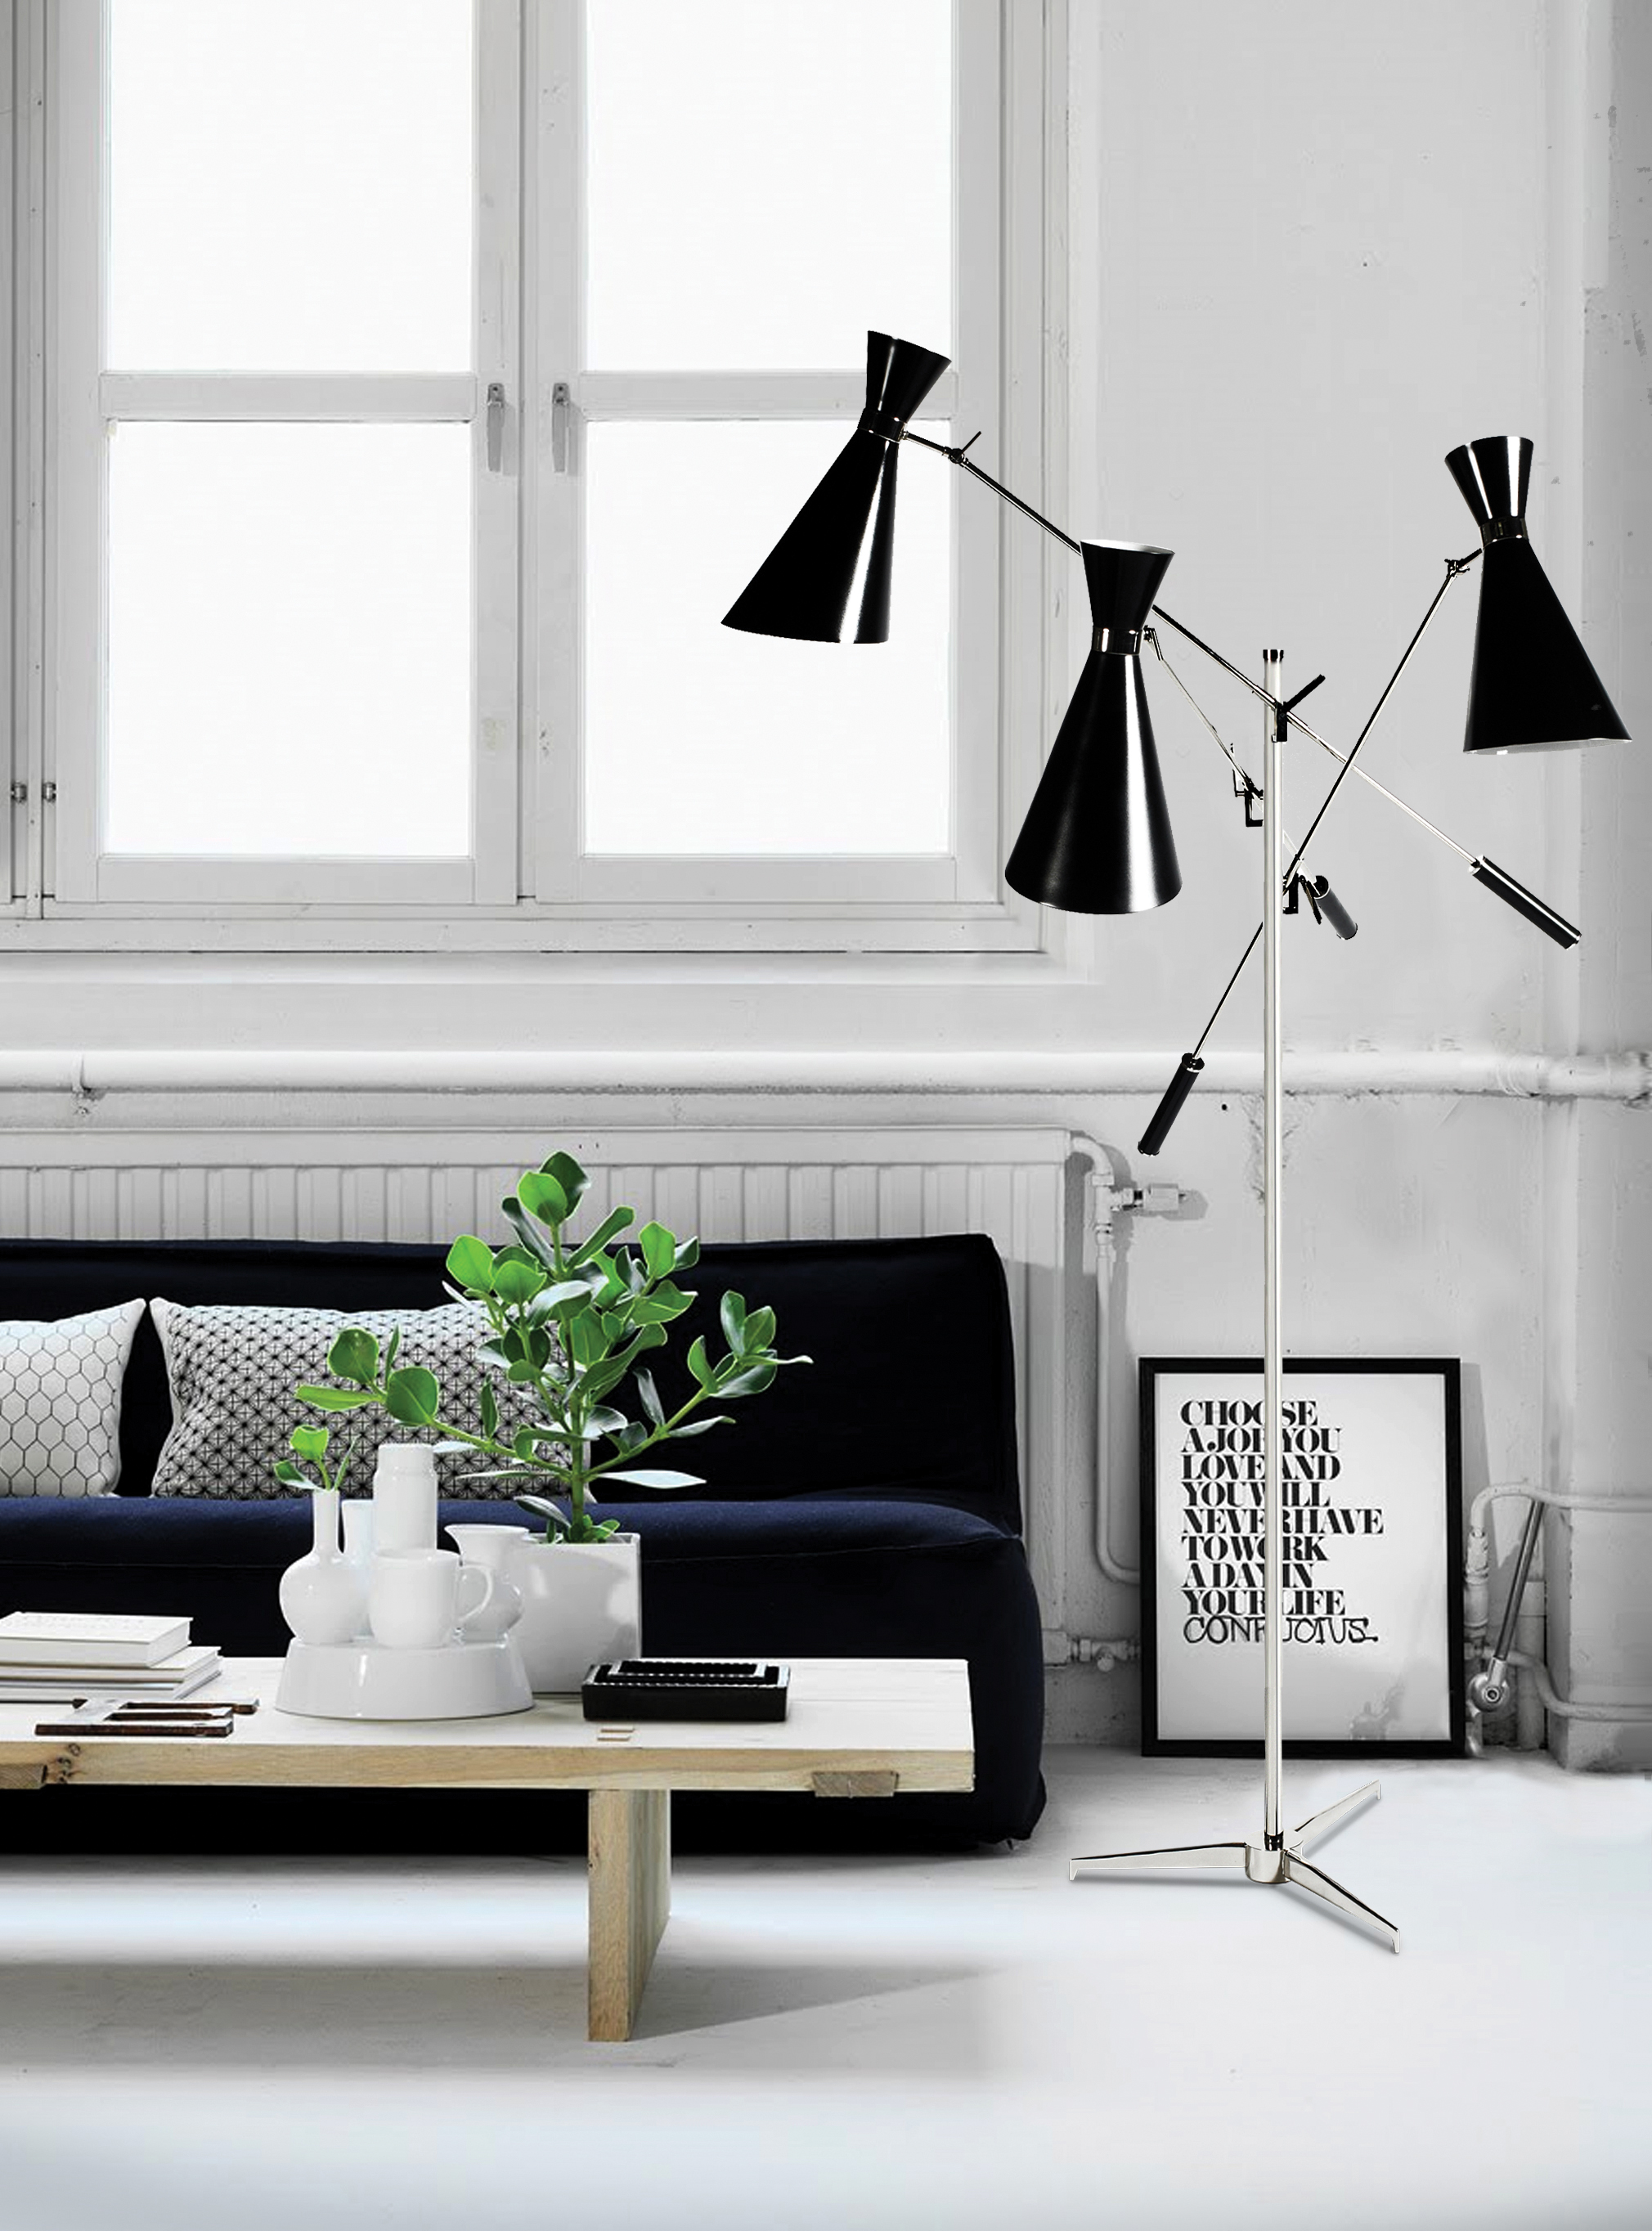 Bright Ideas An Adjustable 3 Light Floor Lamp That You'll Love 3 light floor lamp Bright Ideas: An Adjustable 3 Light Floor Lamp That You'll Love Bright Ideas An Adjustable 3 Light Floor Lamp That You   ll Love 4